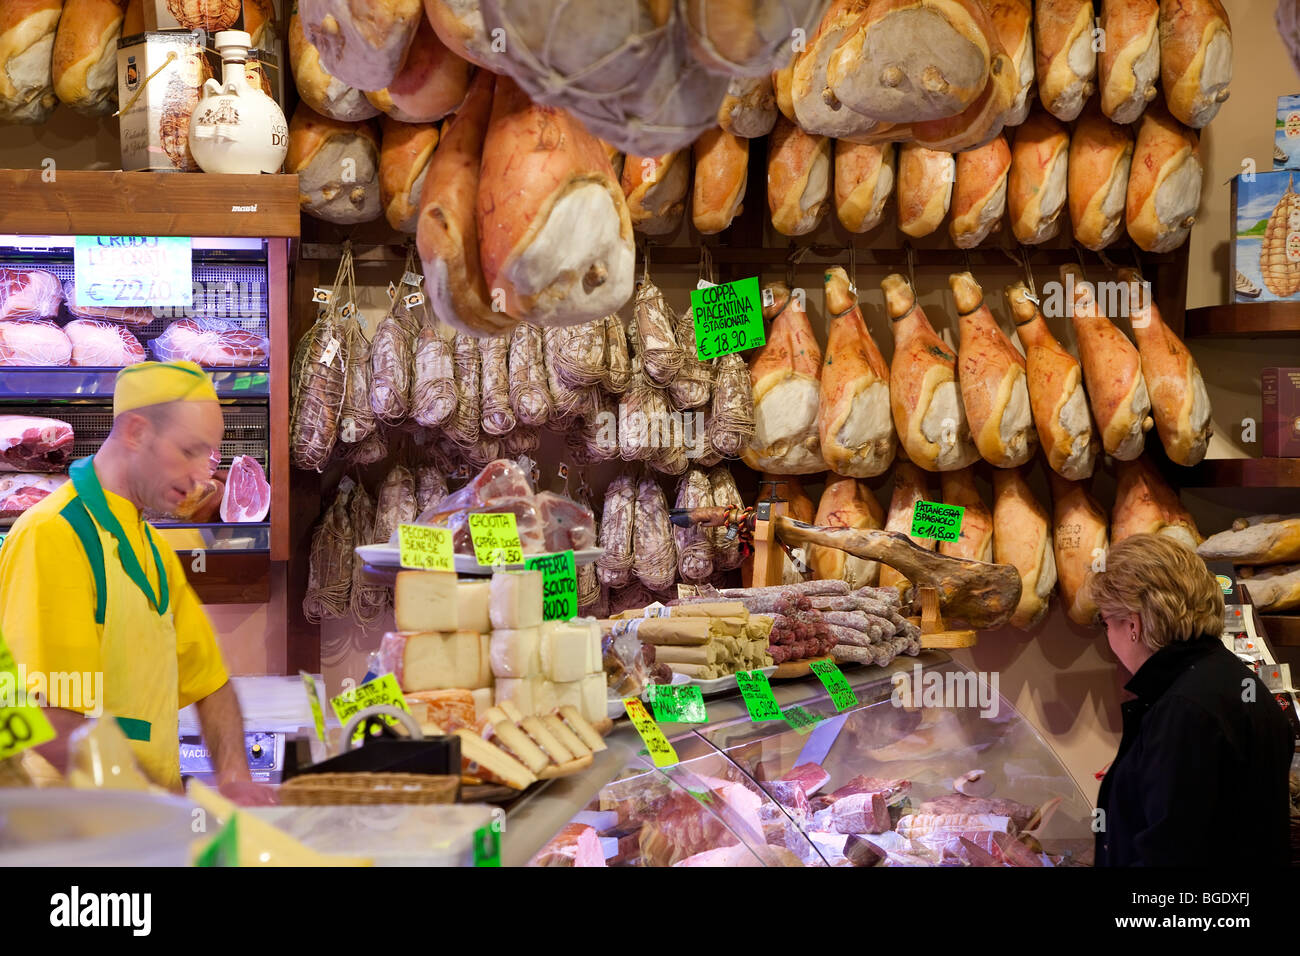 A selection of Parma hams, cheeses in a deli in Parma, Emilia Romagna, Italy - Stock Image